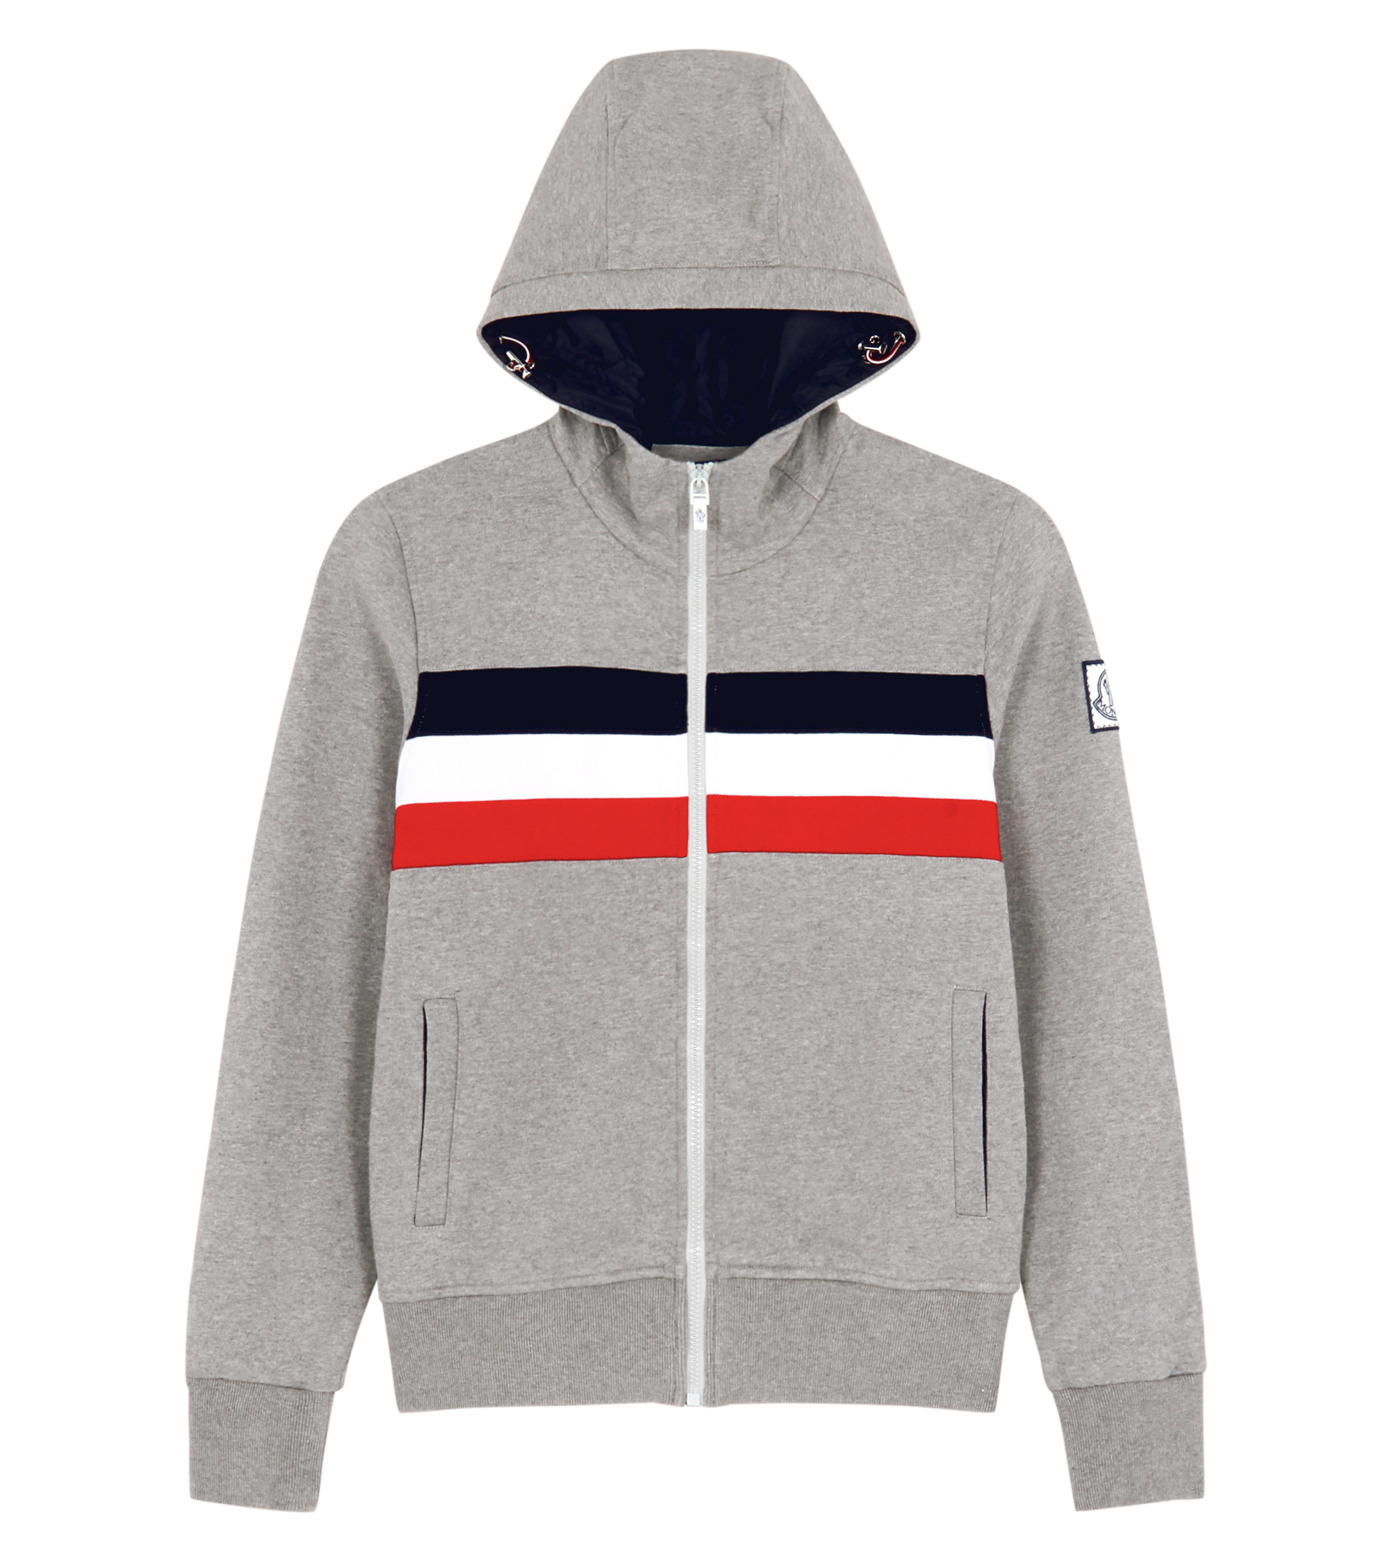 Moncler Gamme Bleu(モンクレールガムブルー)のSweat parka-CHARCHOL GRAY-84011-00-12 拡大詳細画像1